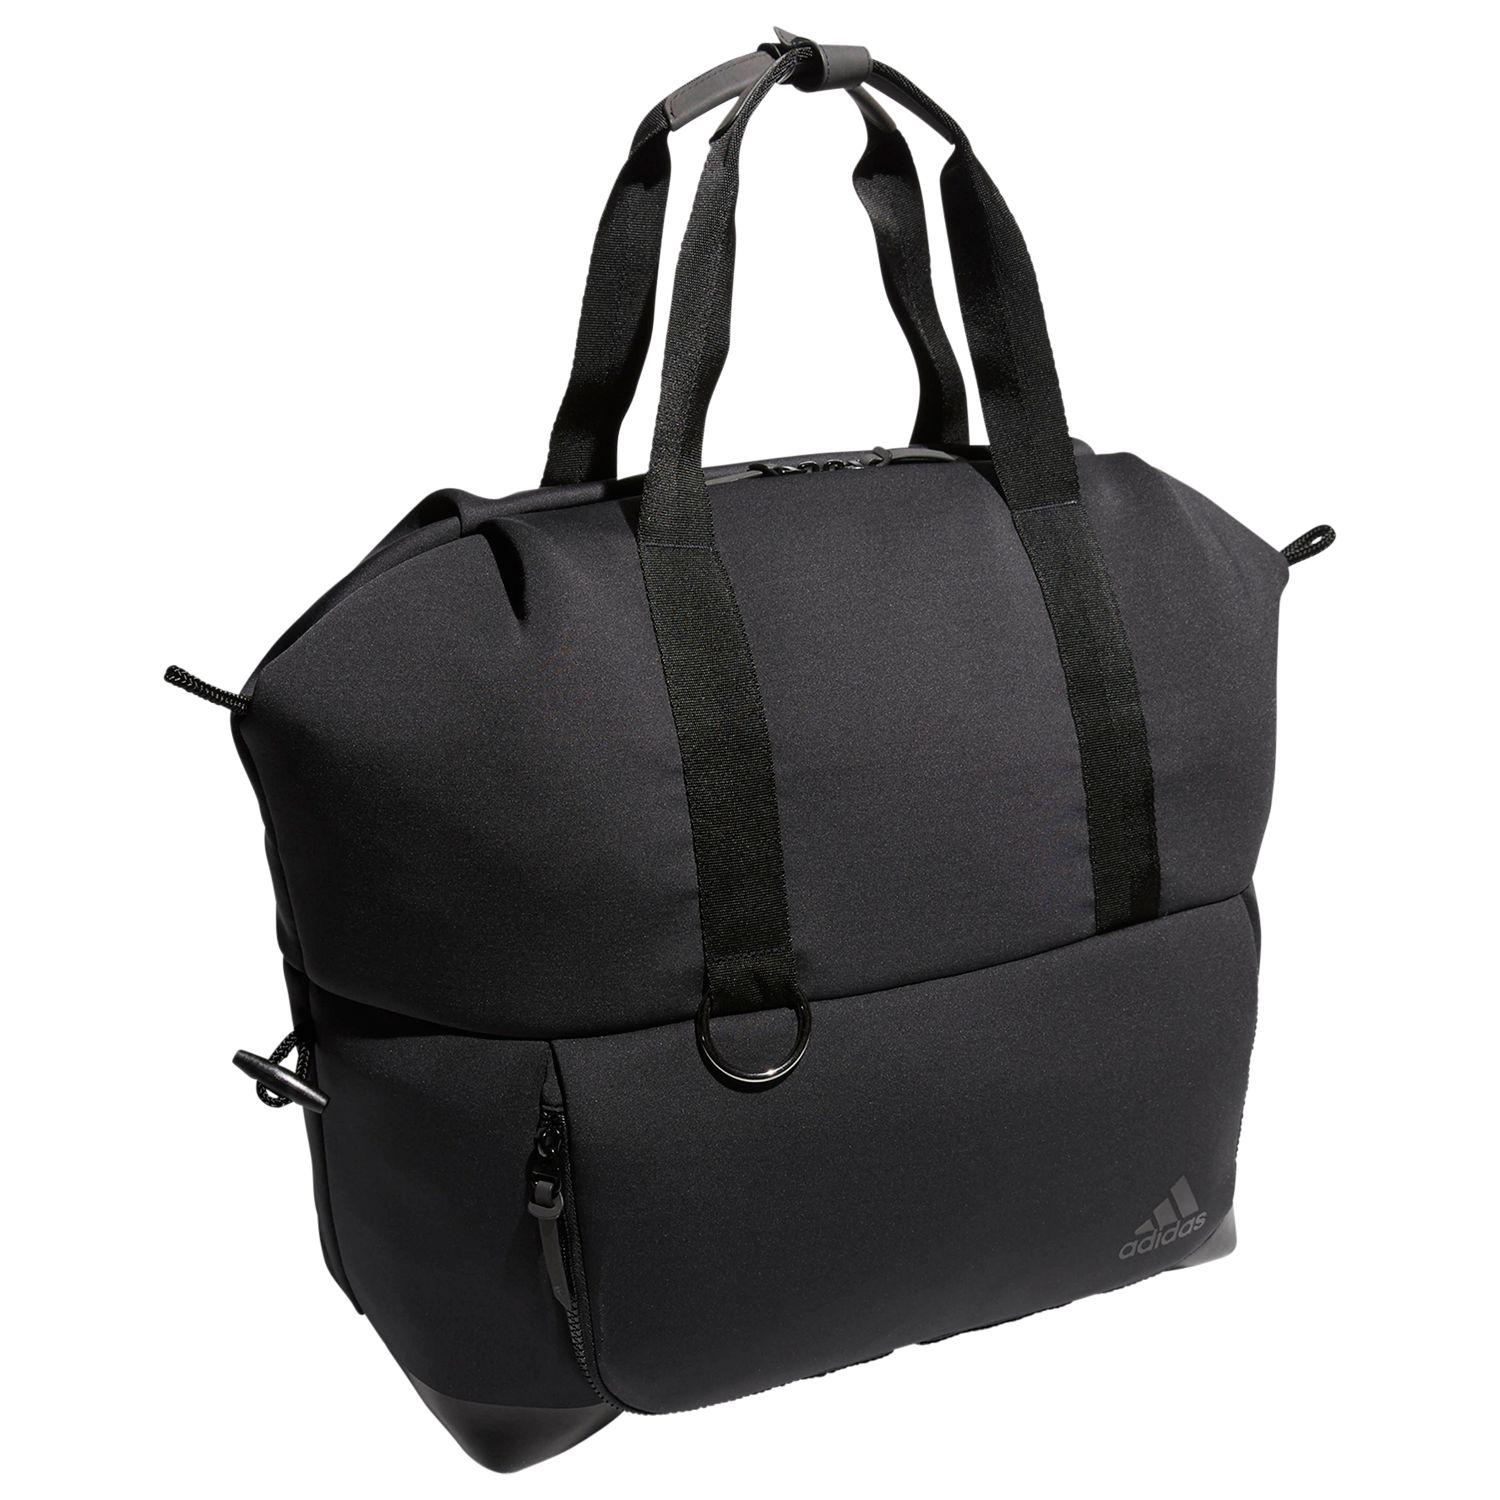 adidas Synthetic Tote Convertible Bag in Carbon Grey (Black)